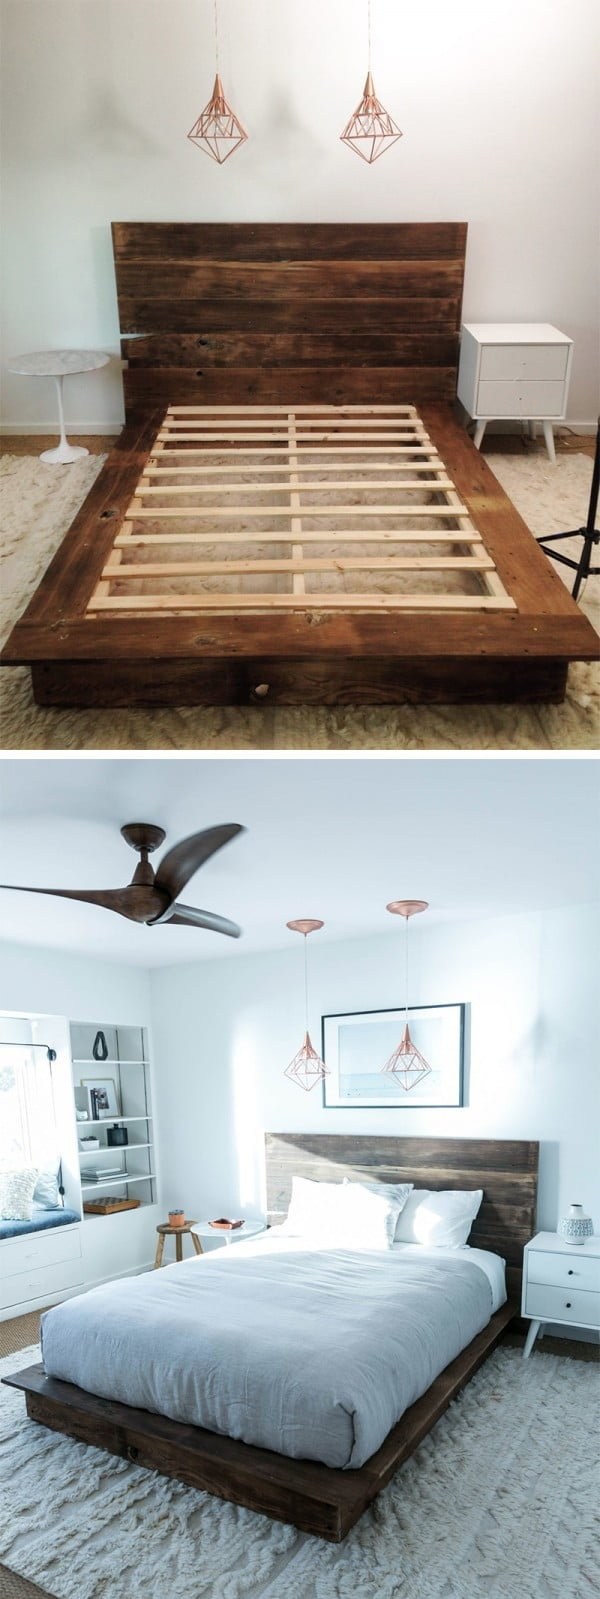 Diy Reclaimed Wood Platfrom Bed